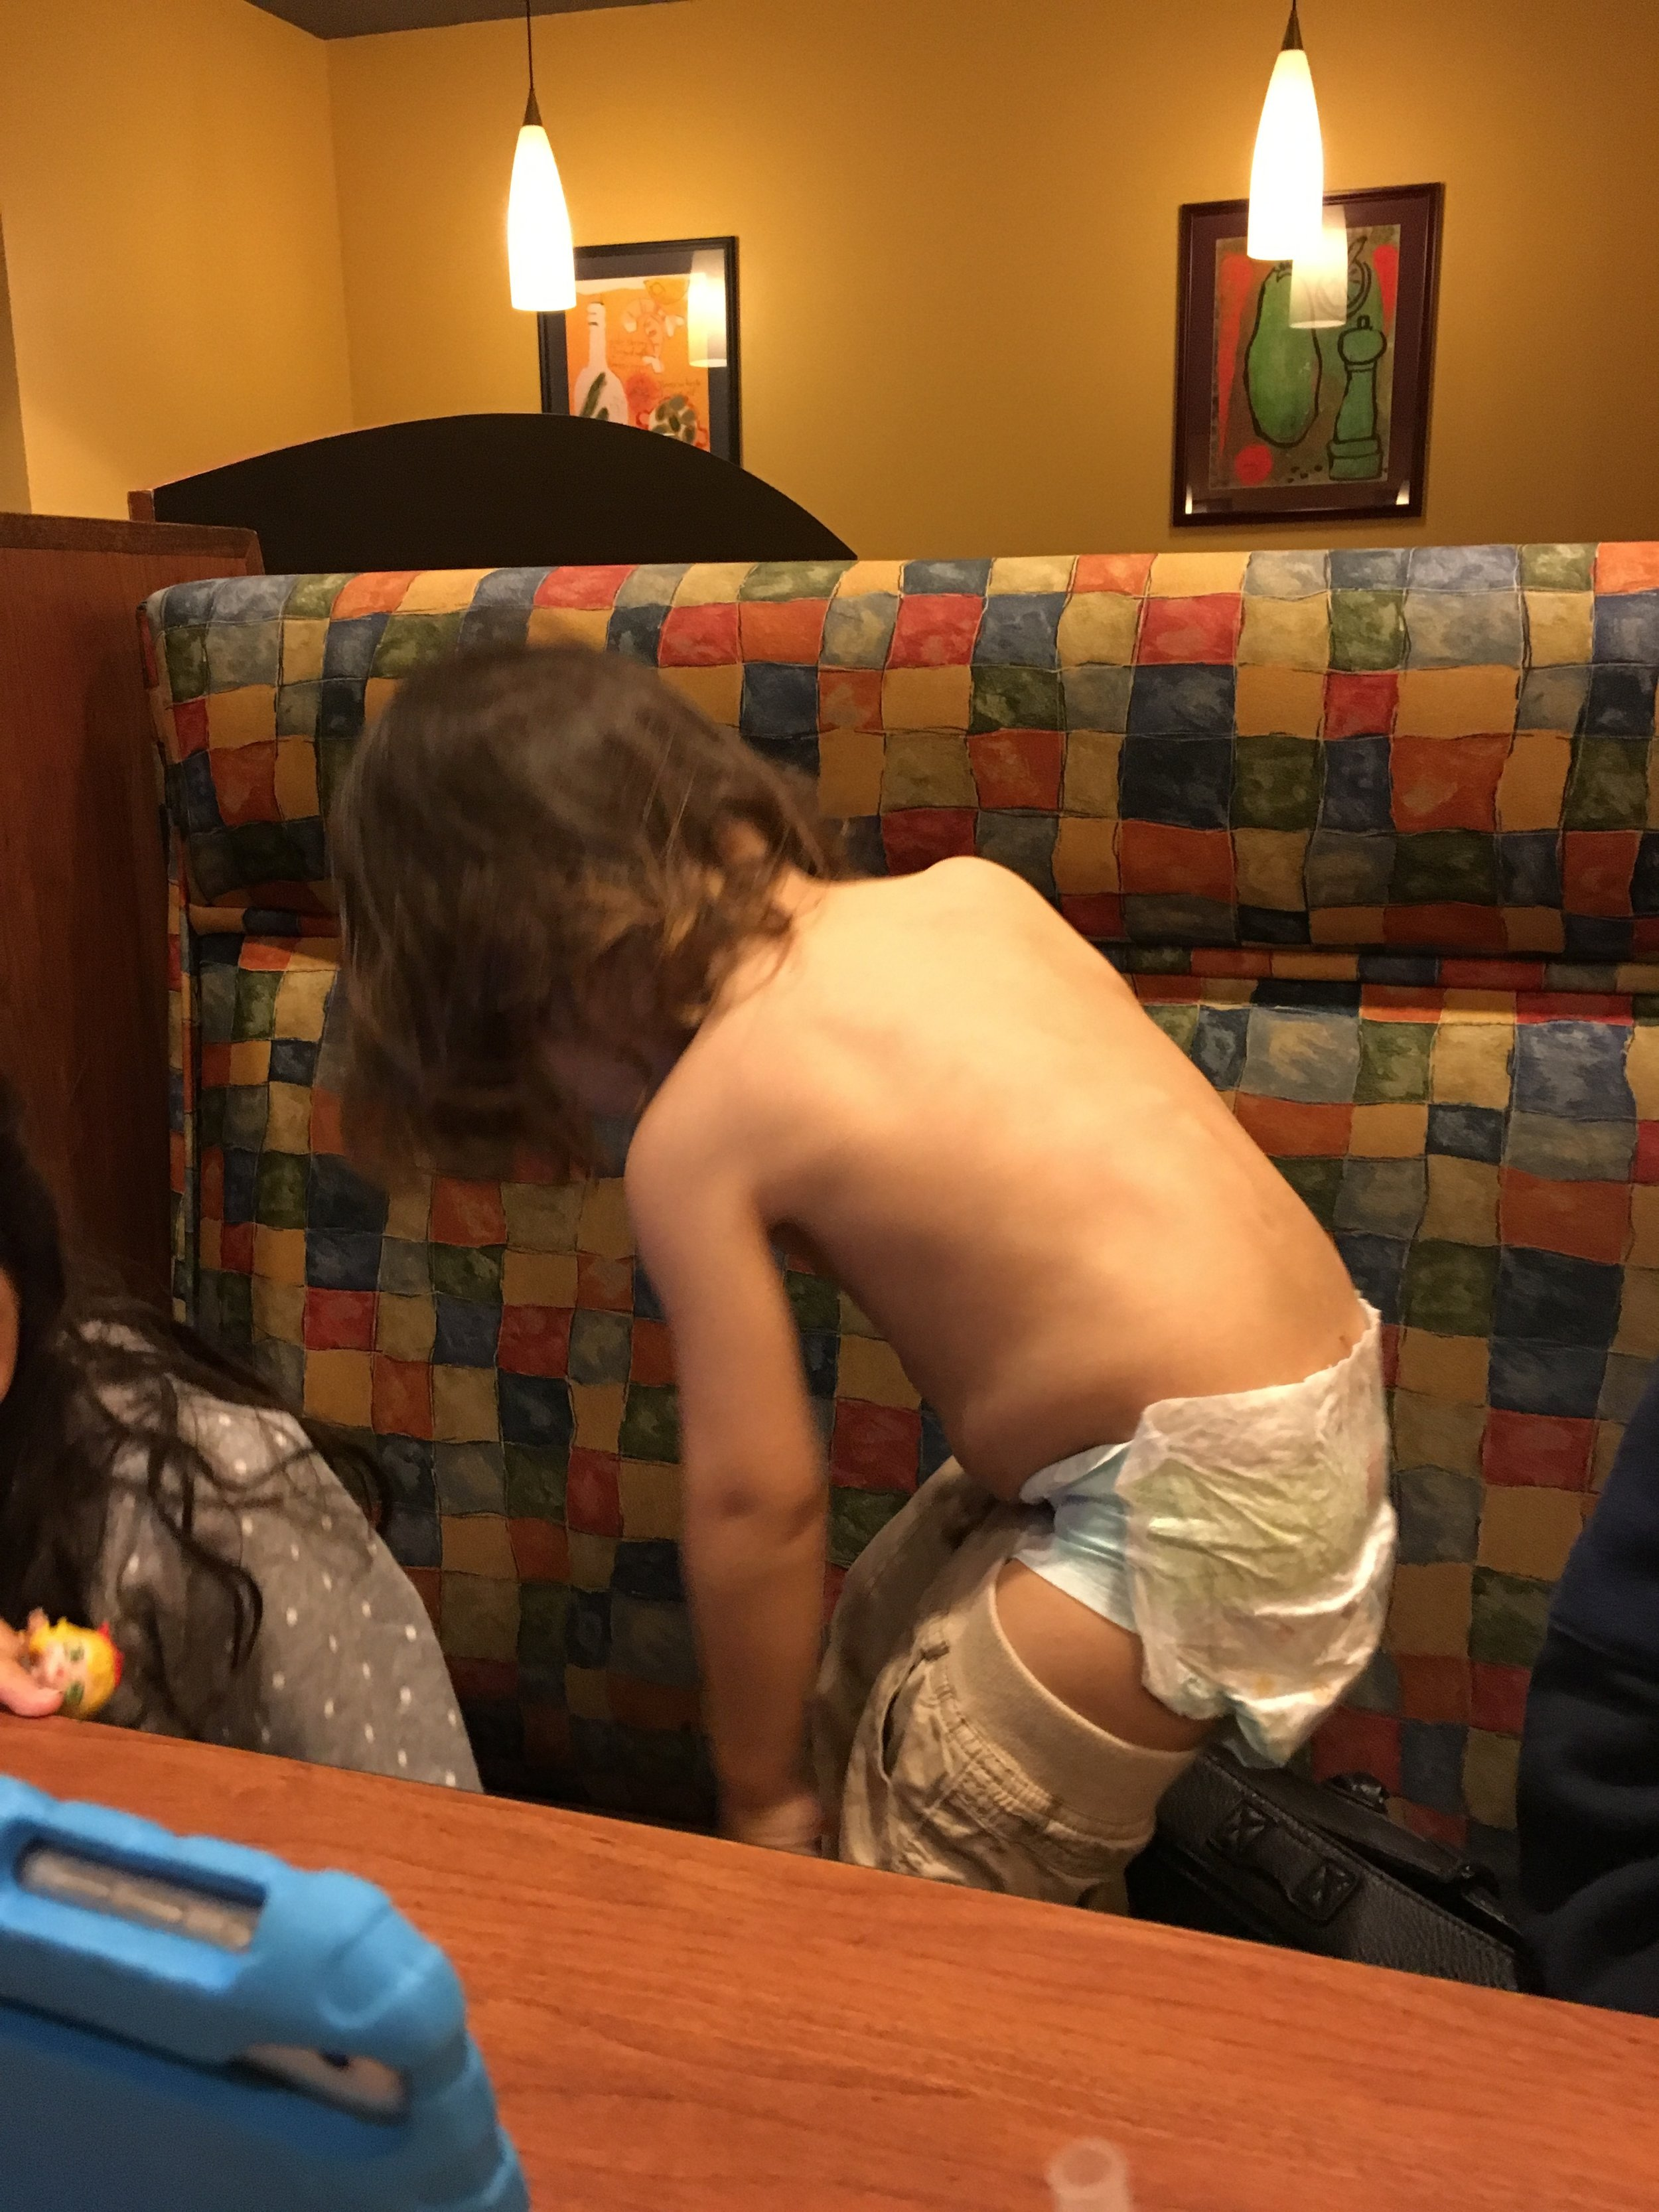 Dis guy , gets his shirt tiny bit wet from drinking water and does the full strip down in the restaurant  Seconds after a lady walks up to us and says how great the kids are.  Ha ha